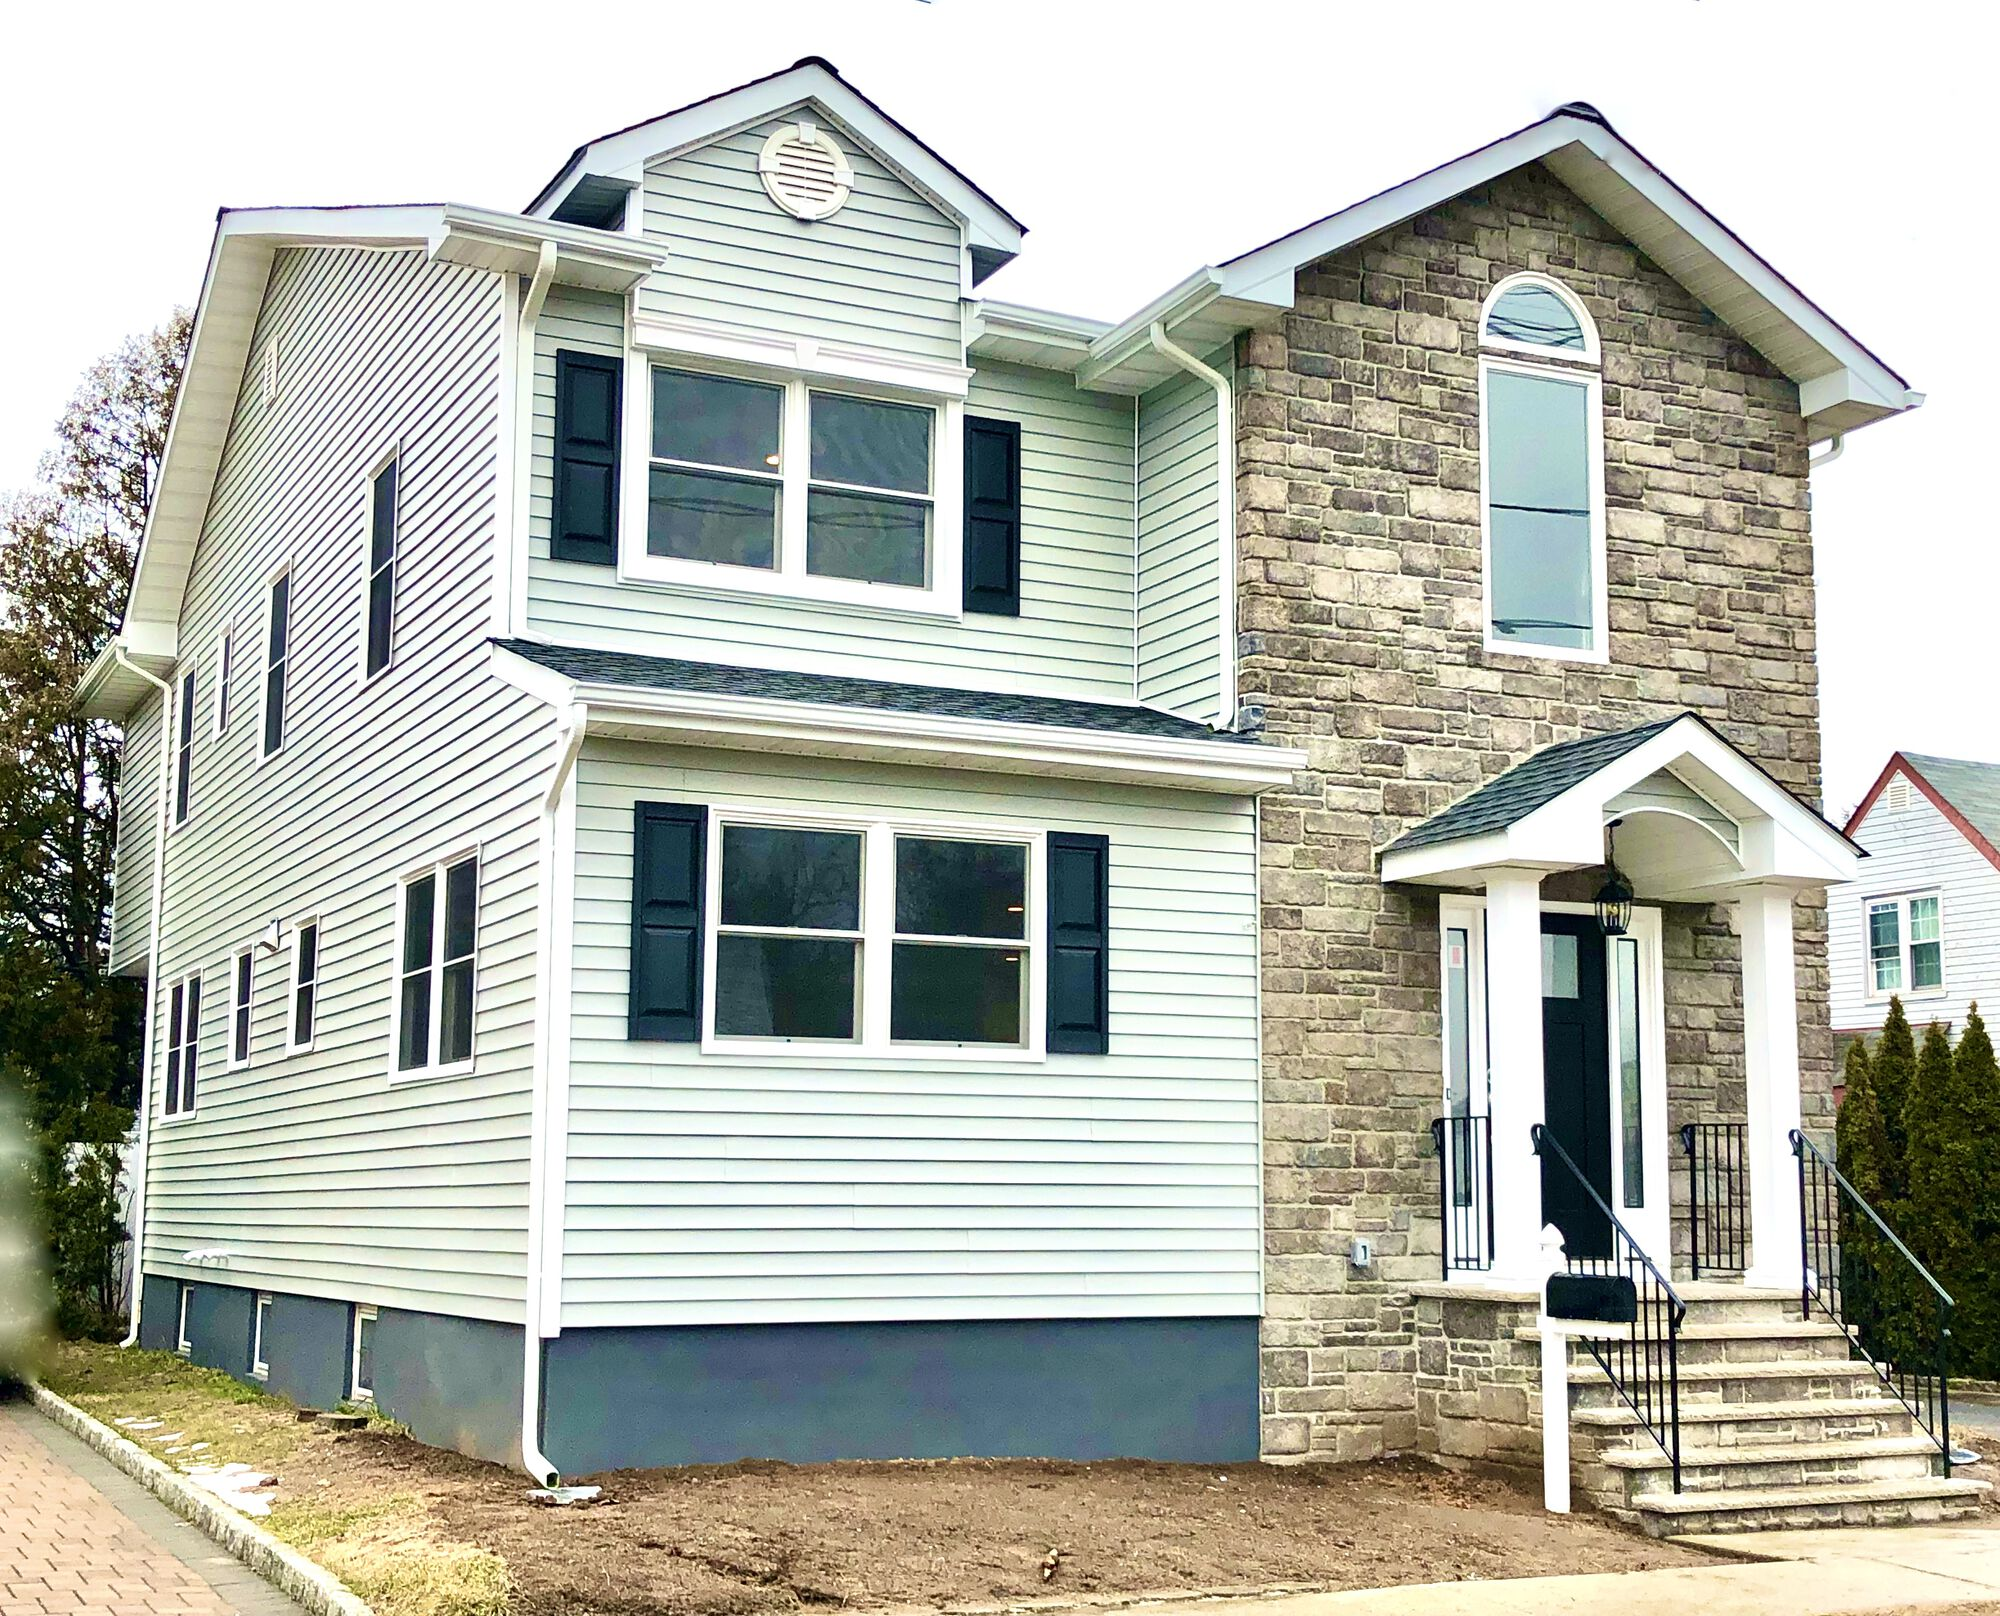 House Renovation and Addition with GAF Roofing, Alside Conquest Siding, Andersen Windows, Portico with Boral Cultured Stone Veneers in Fairlawn, Bergen County NJ